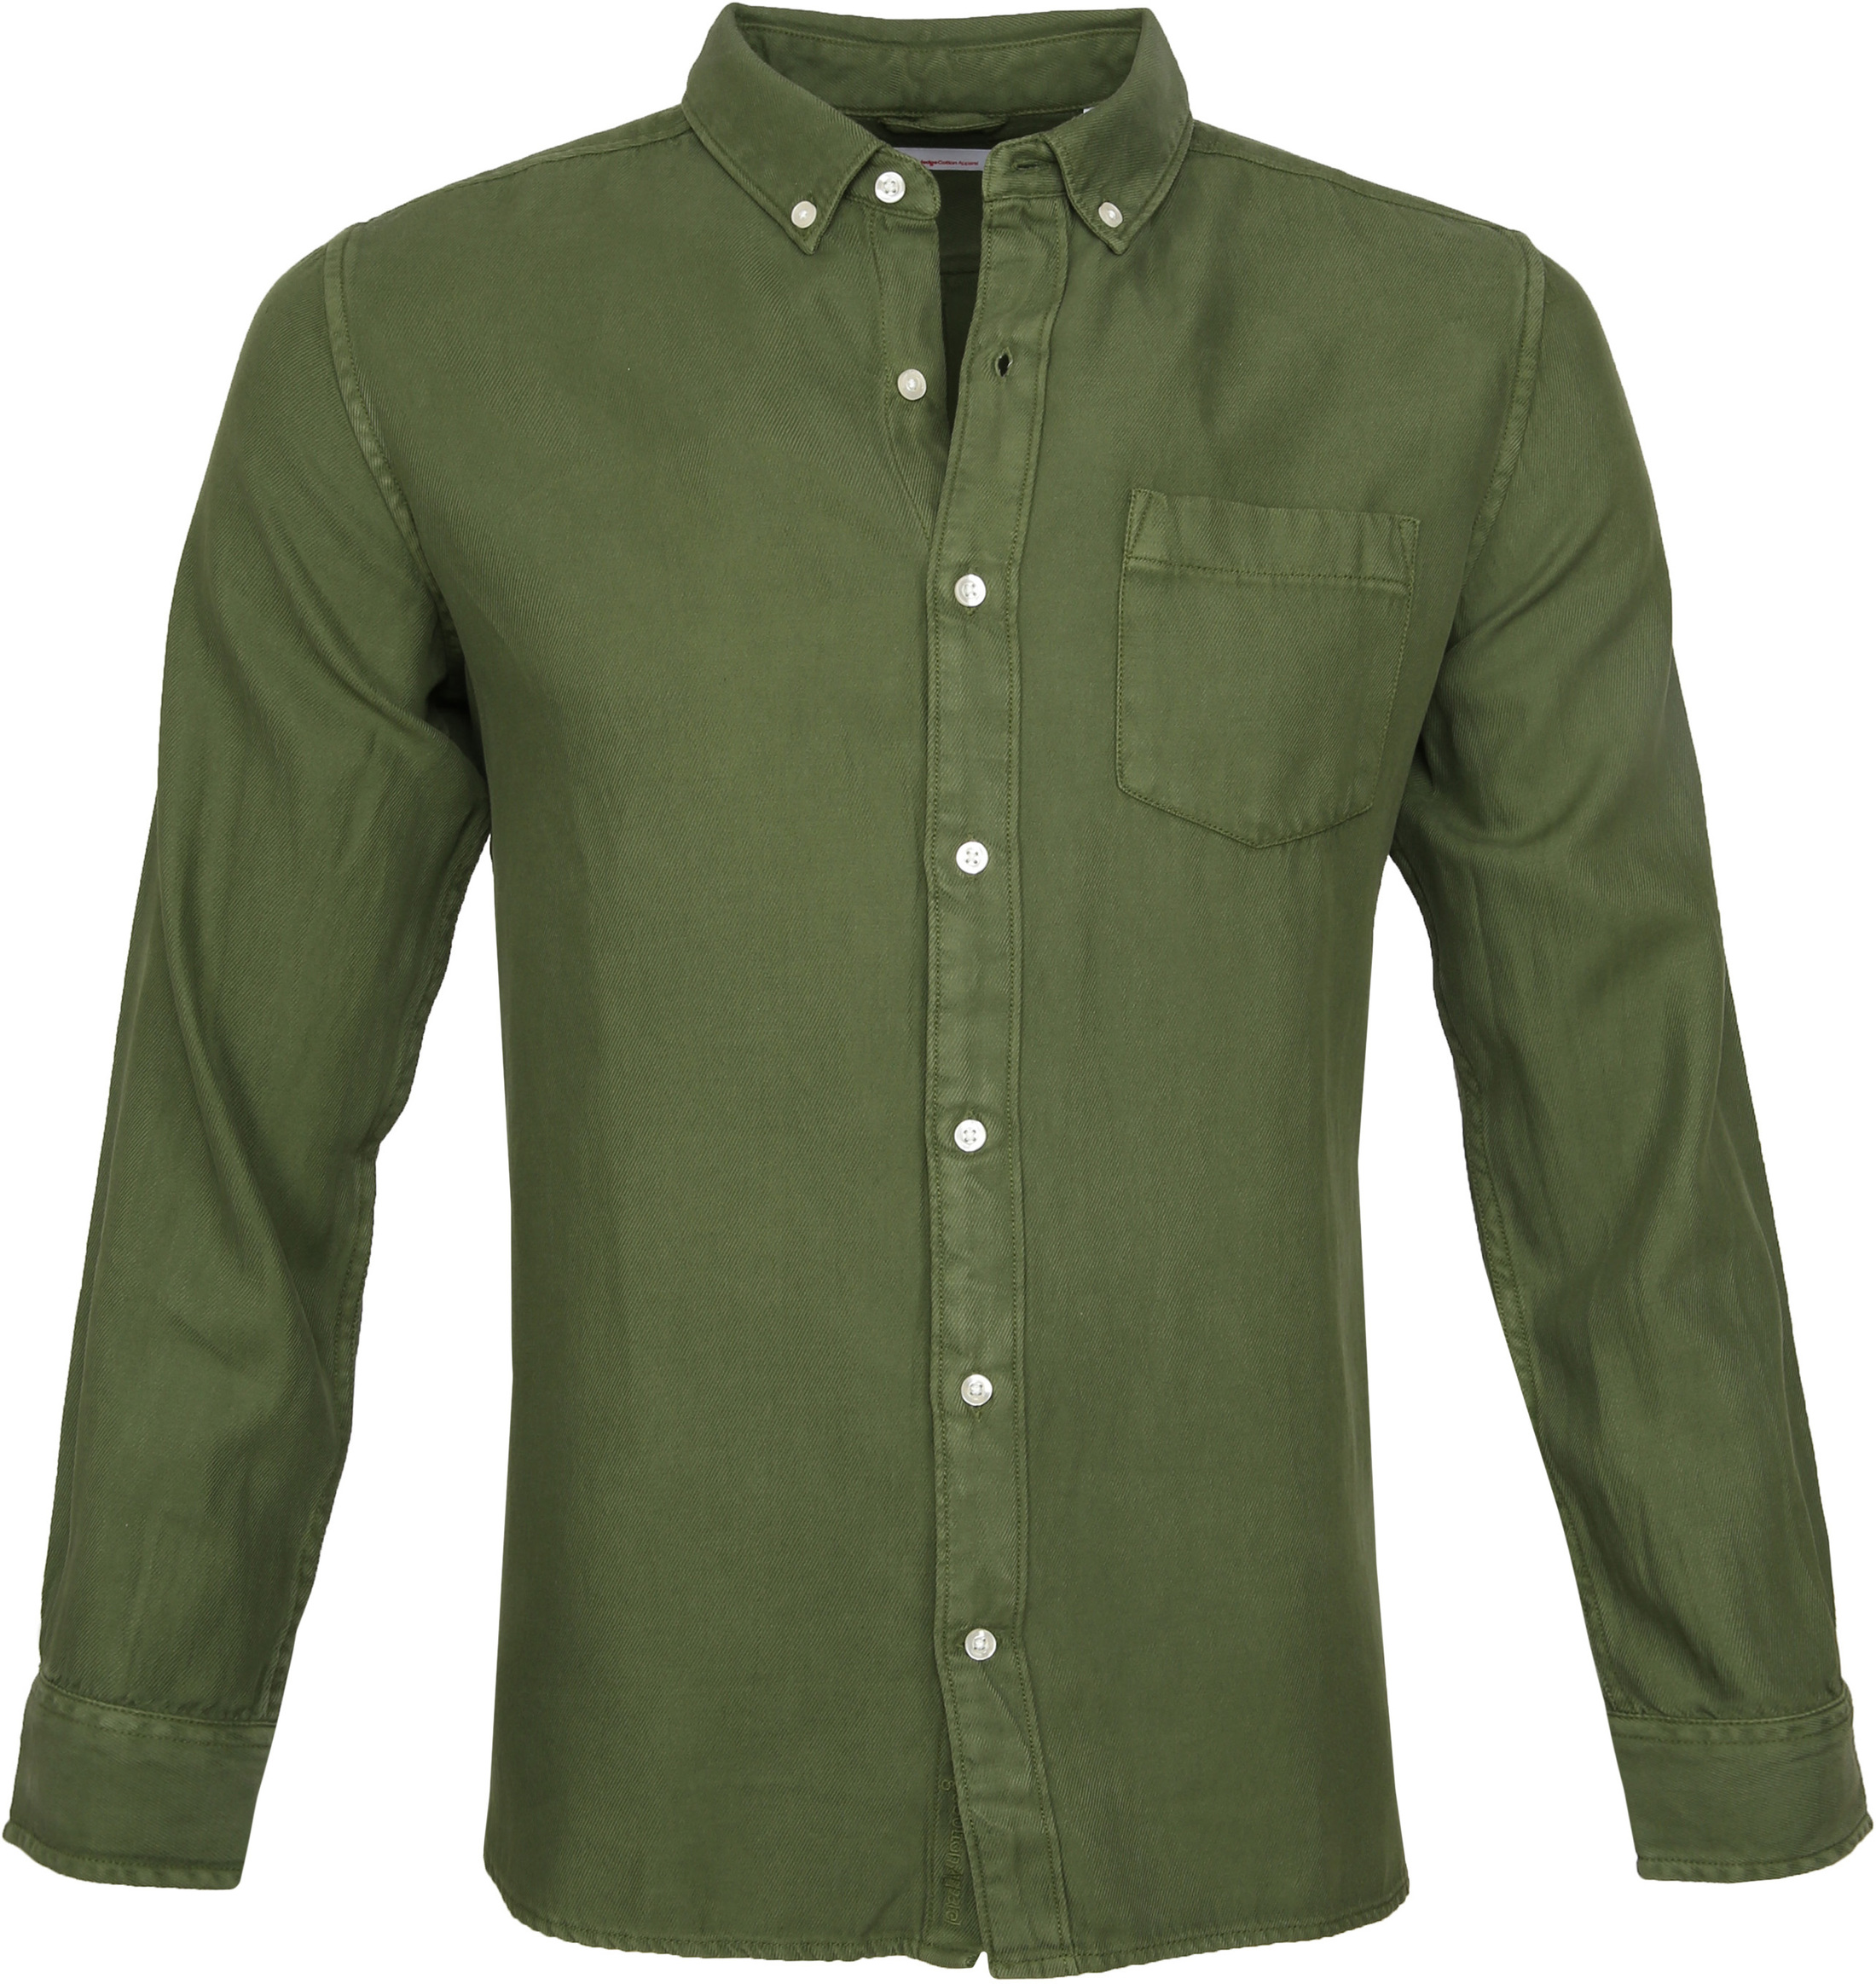 KnowledgeCotton Apparel Overhemd Twill Groen foto 0